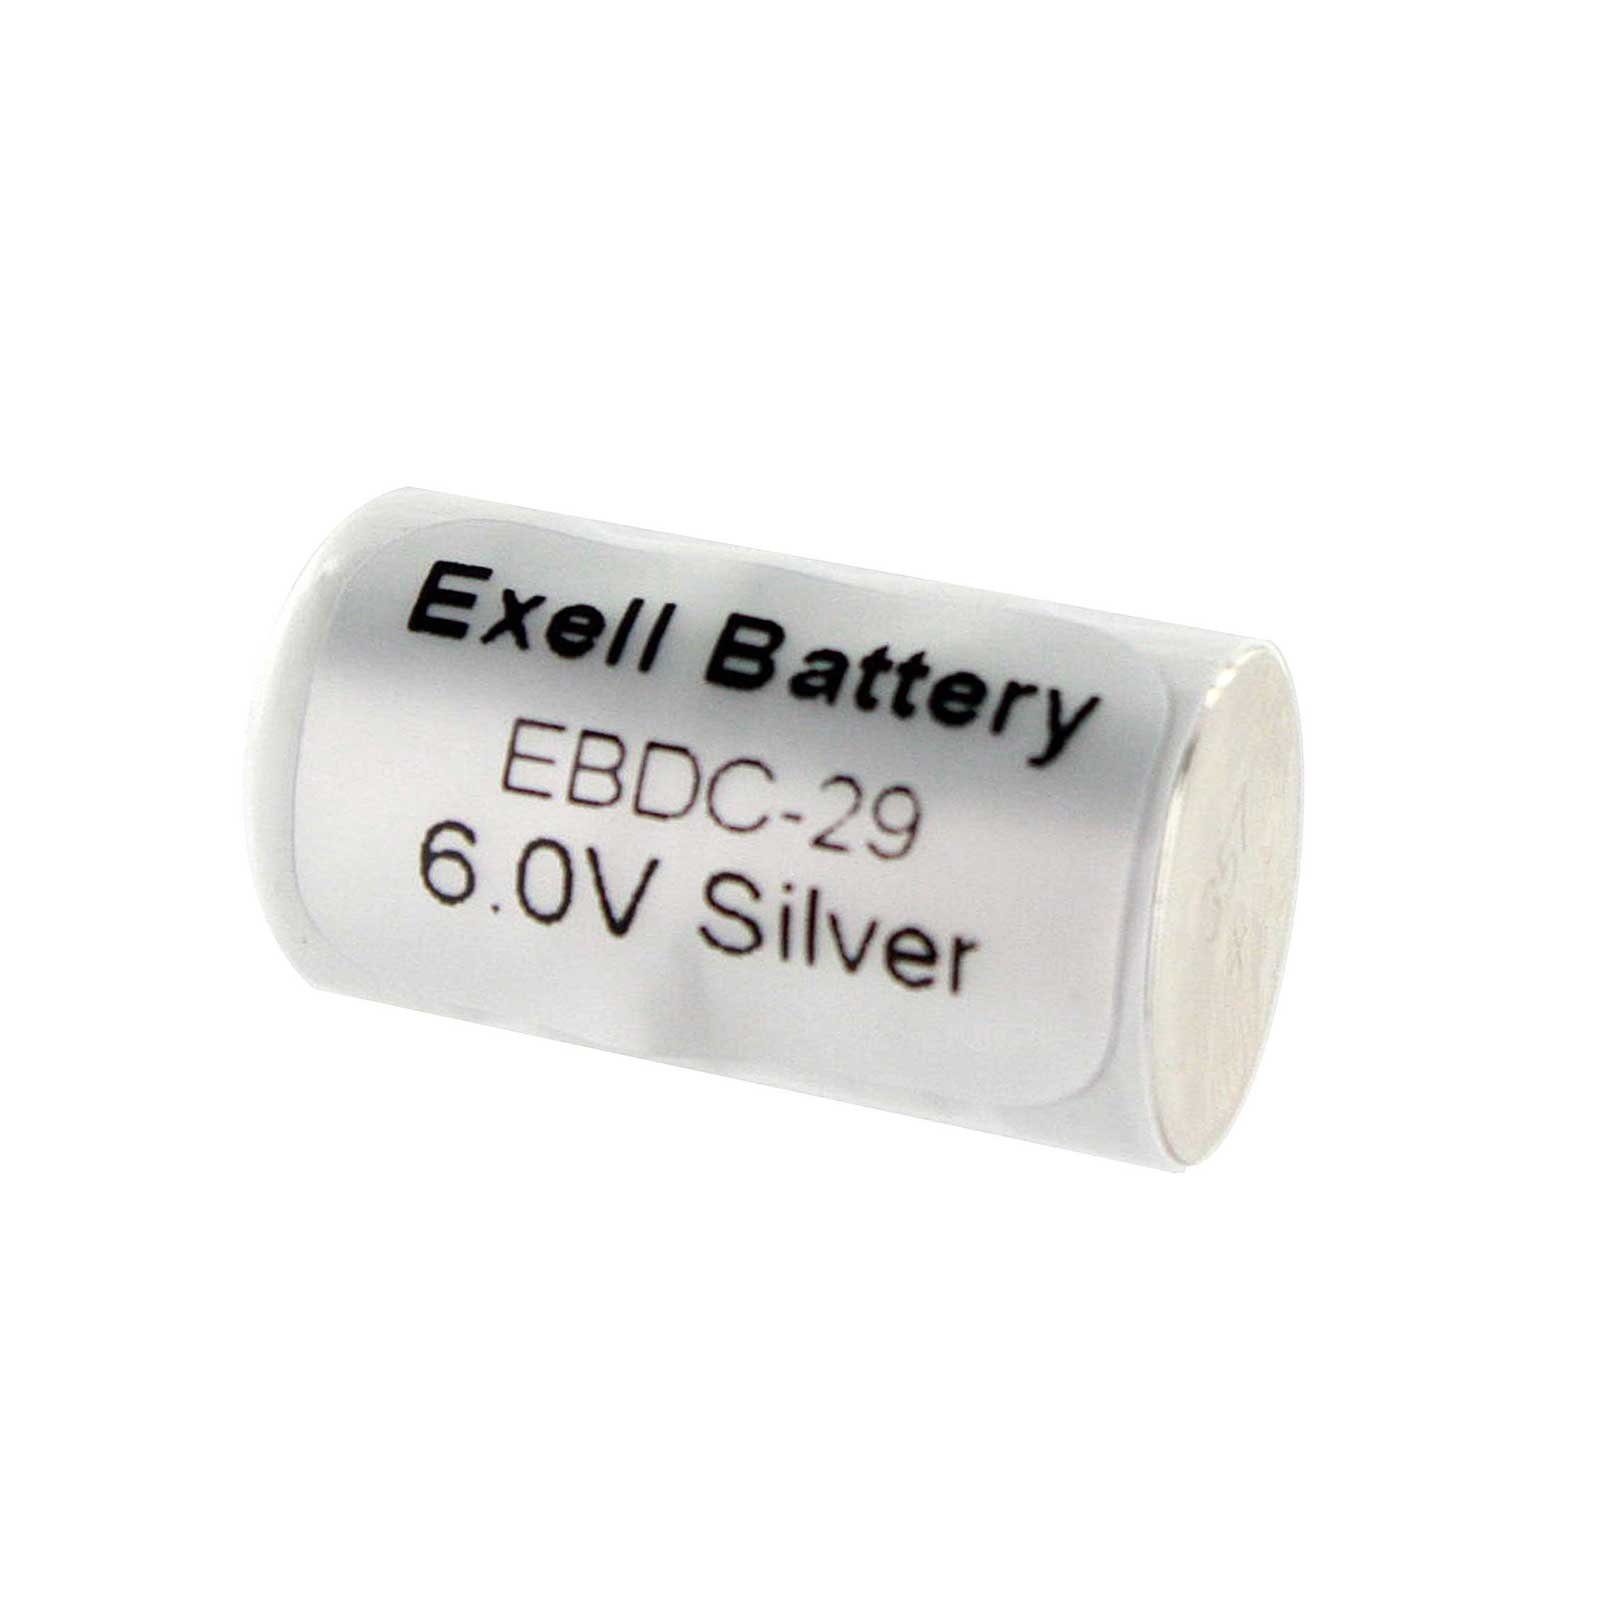 DOG Collar Battery - NEW - Replcaes Dog Guard DG-3000 RECEIVER DG-5000 RECEIVER DG-9000 RECEIVER DG9XT RECEIVER Interstate DRY6011 Dantona DC-29 Applied Power PSA60SO-AP Invisible Fence Contain-a-Pet by Exell Battery (Image #3)